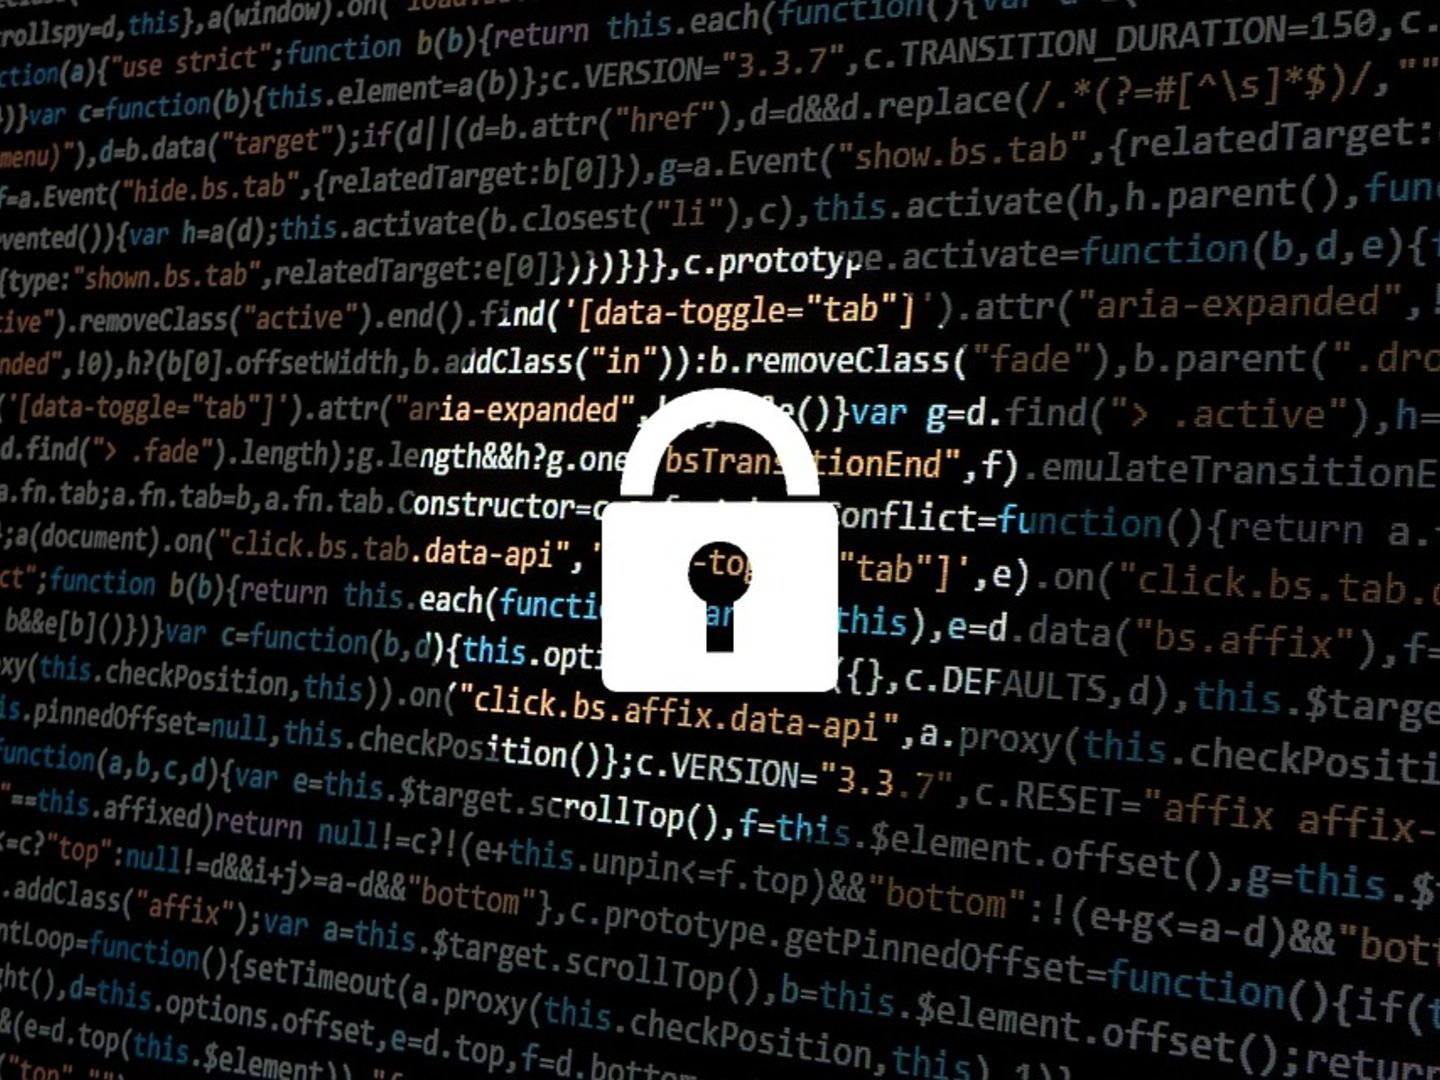 Cyber Insurance protects your business against Cyber Attack or Data Breach, talk to Peter Vickers Insurance Brokers for the best policy for you.